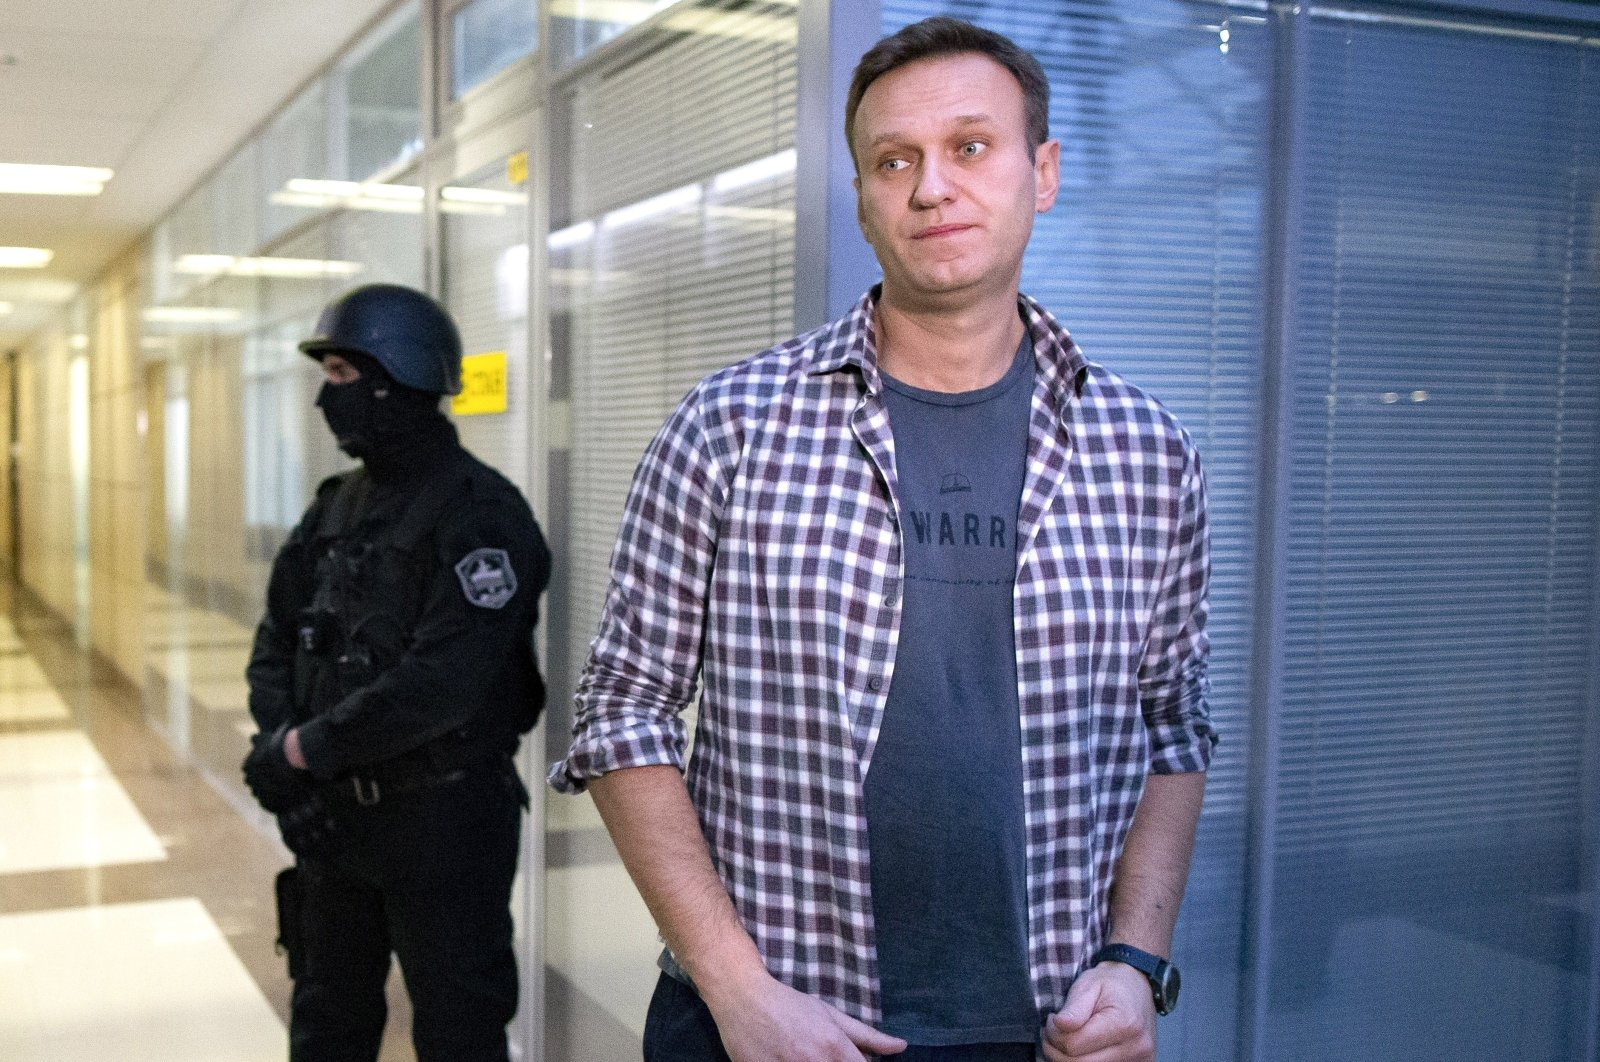 In this Dec. 26, 2019, file photo, Russian opposition leader Alexei Navalny speaks to the media in front of a security officer standing guard at the Foundation for Fighting Corruption office in Moscow, Russia. (AP Photo)